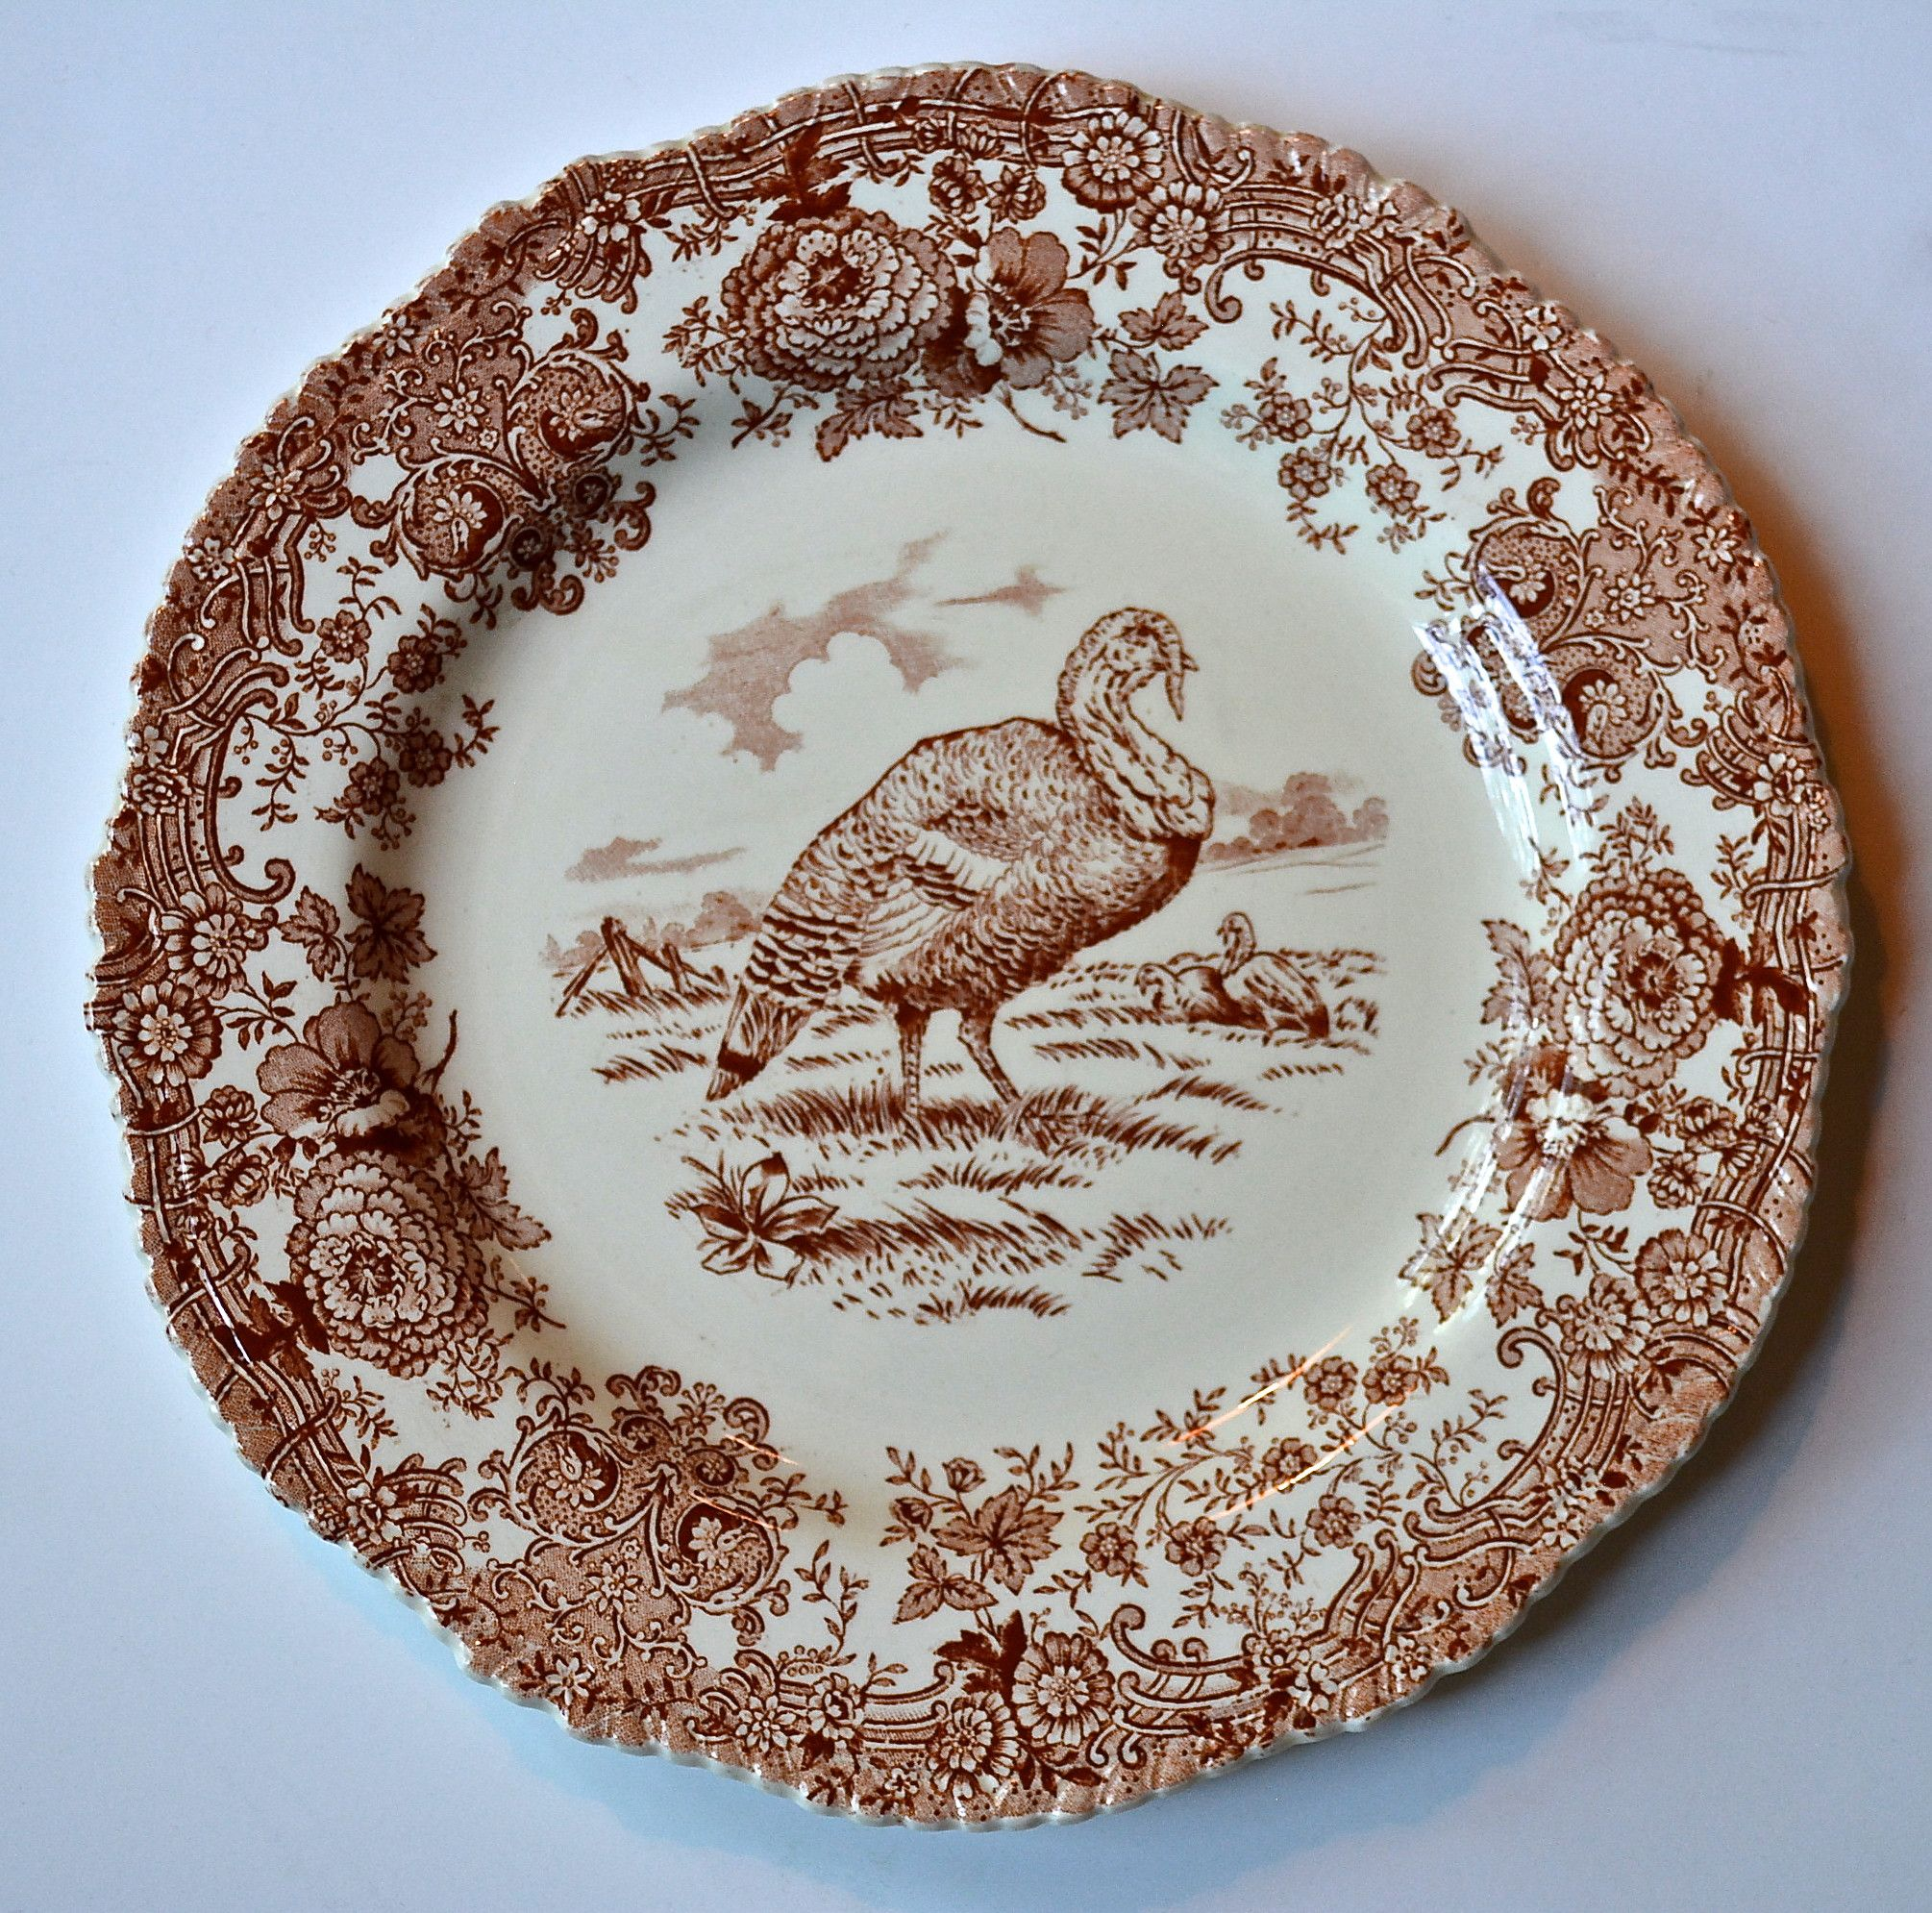 Antique Turkey Plate Brown Transferware Staffordshire China Thanksgiving Dinner Plate Tom Turkey Ridgway Staffordshire Beehive St& & Antique Turkey Plate Brown Transferware Staffordshire China ...